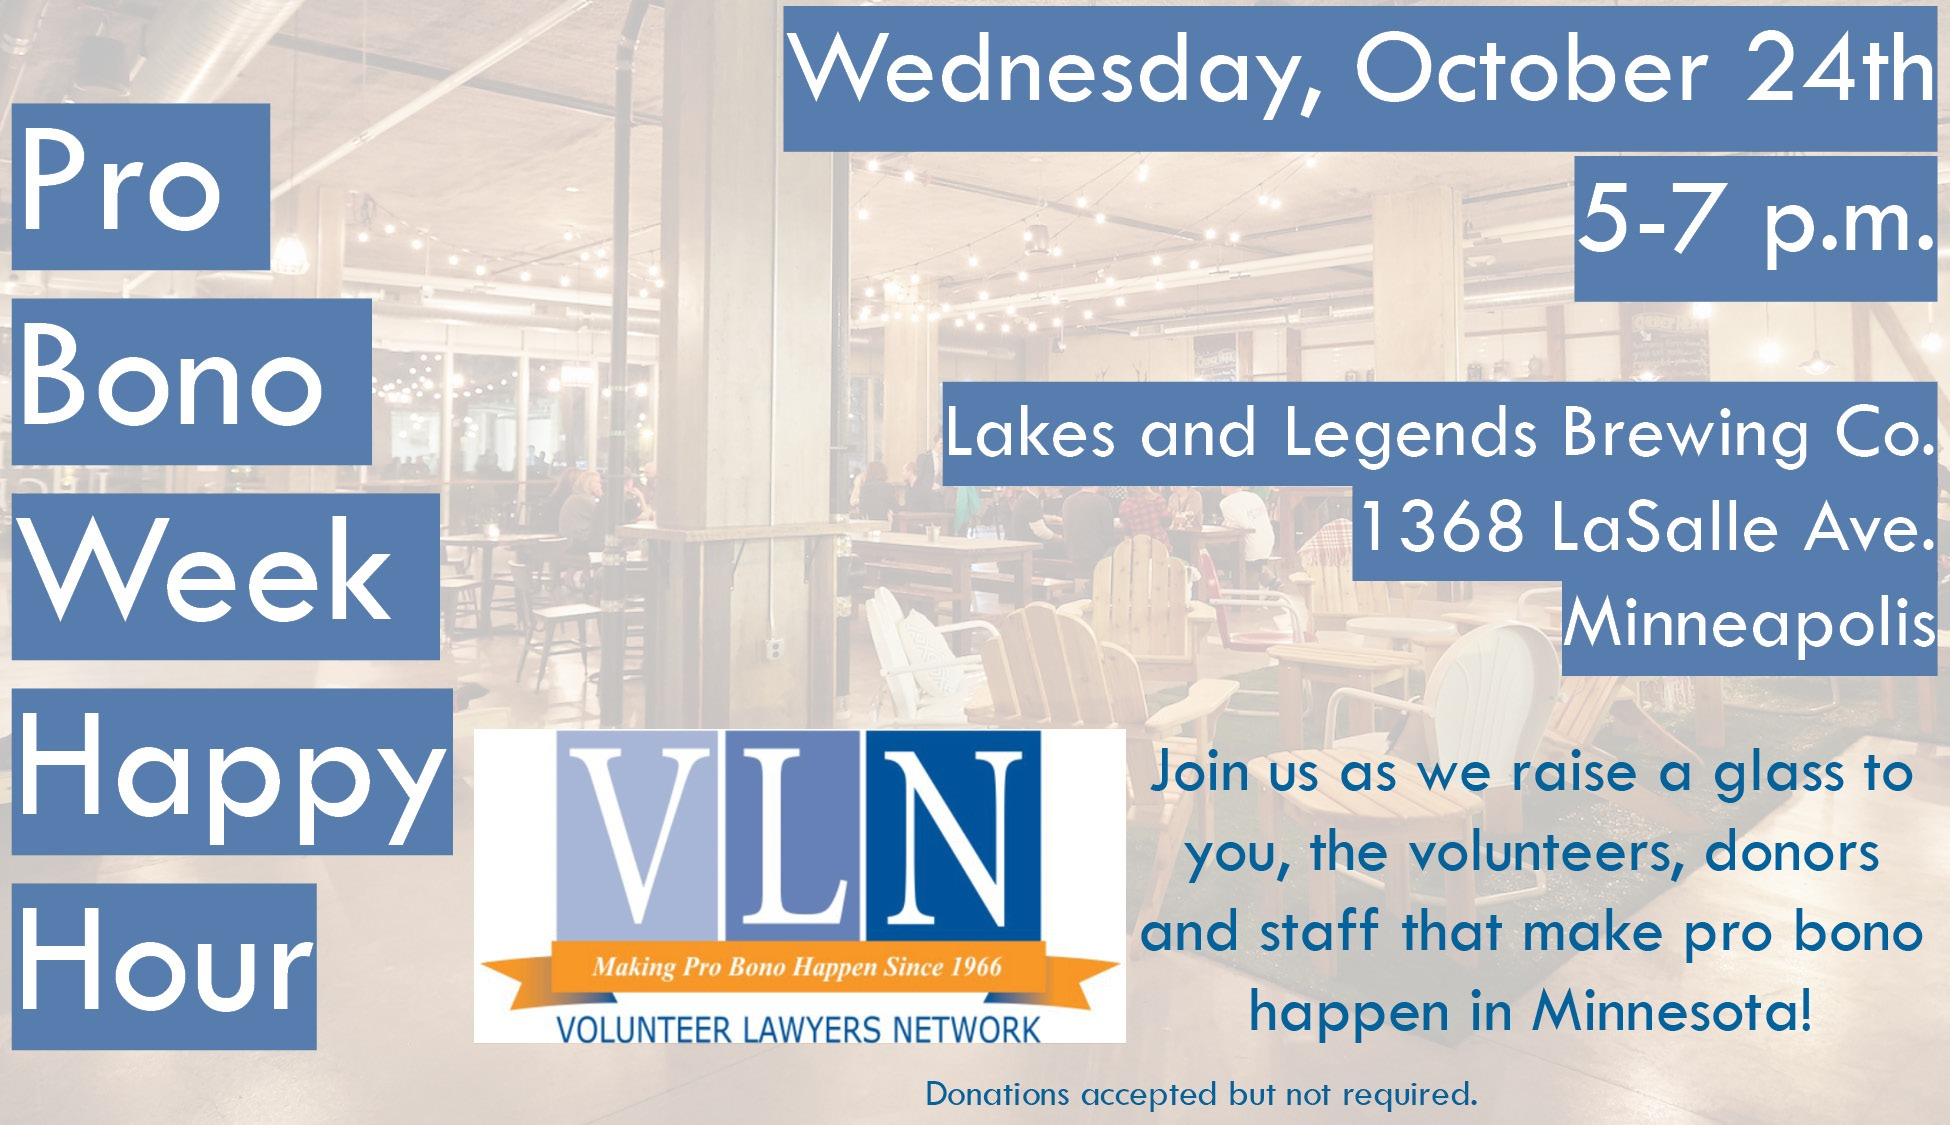 """faded photo of a tap room under blue-highlighted white text reading """"pro bono week happy hour"""" with event details and a VLN logo"""